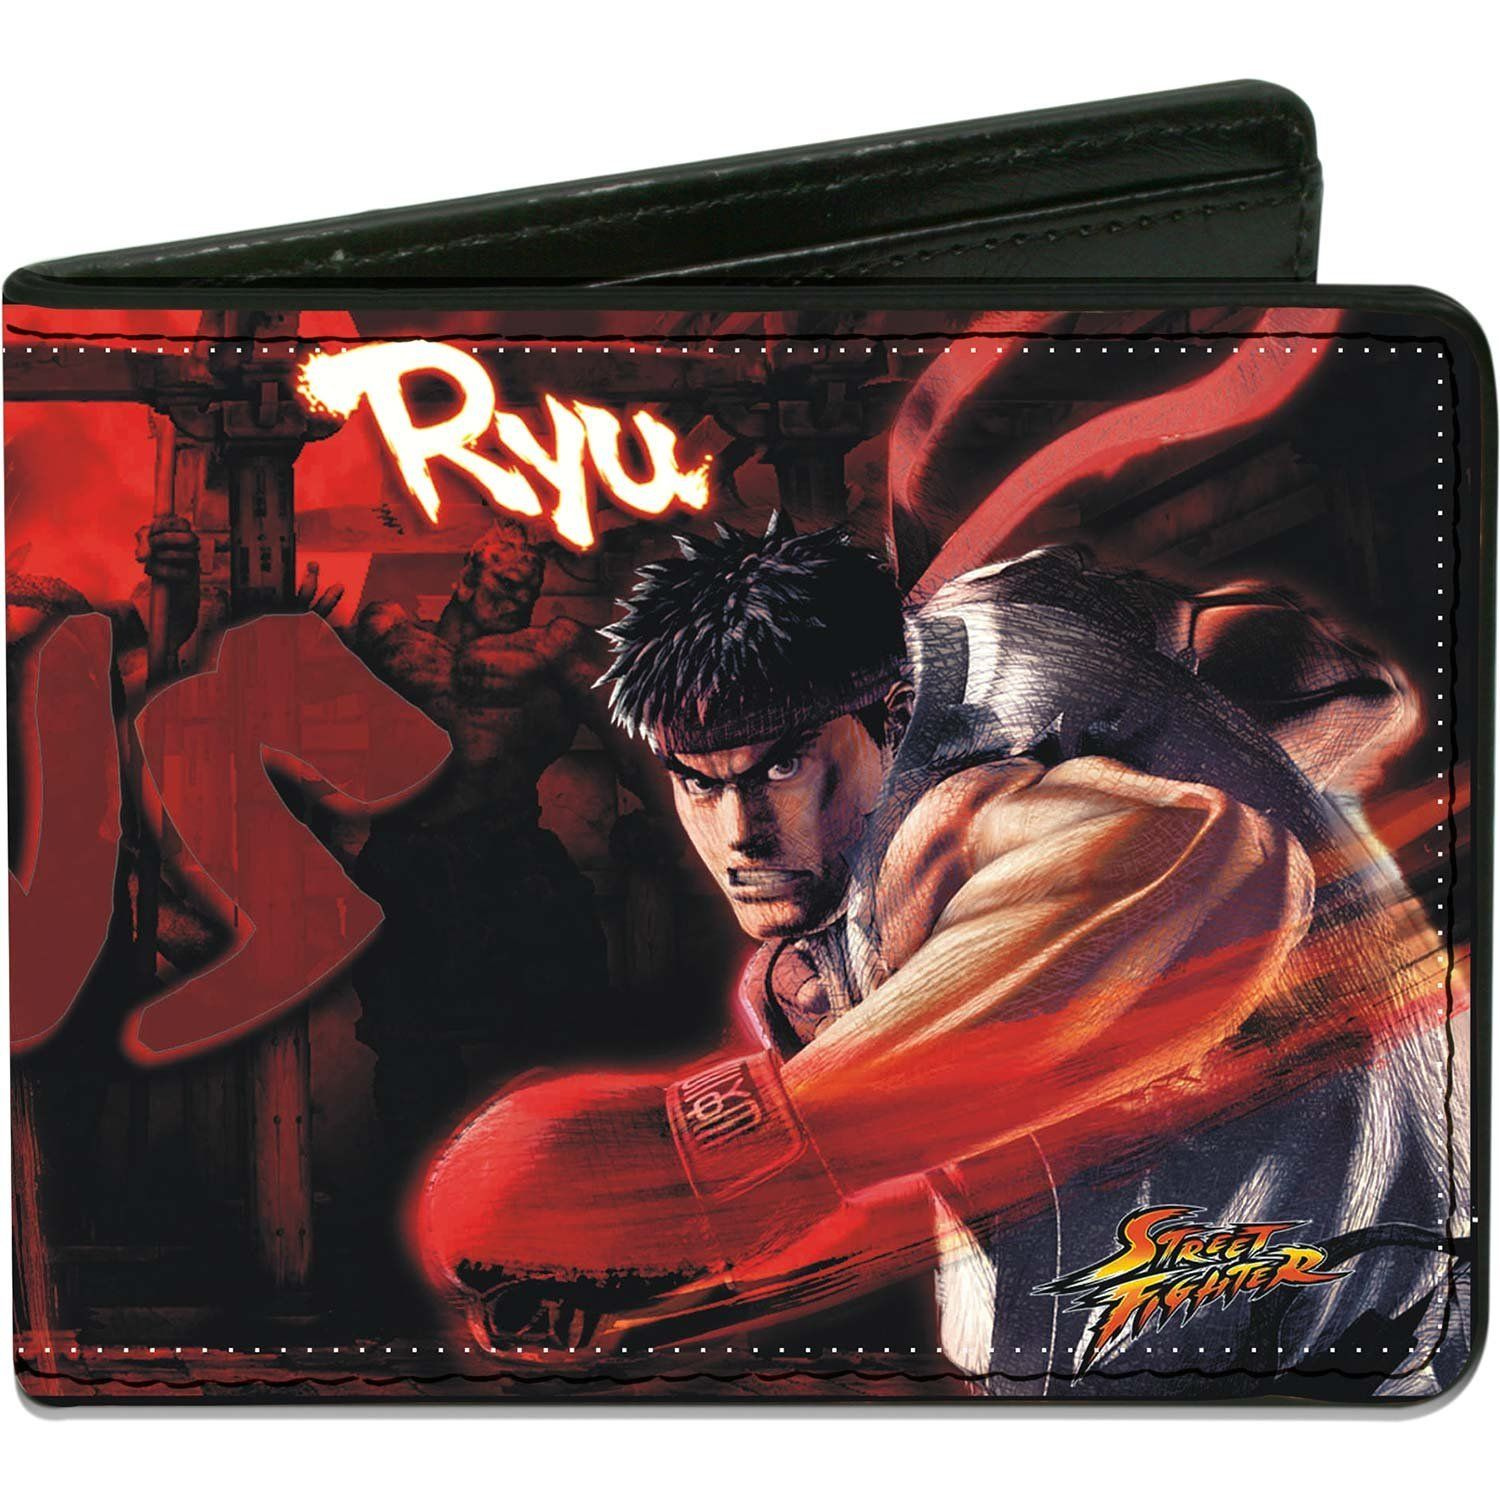 Street Fighter Ryu Vs Akuma Action Pose Bi Fold Wallet See This Great Product Ryu Street Fighter Bi Fold Wallet Street Fighter